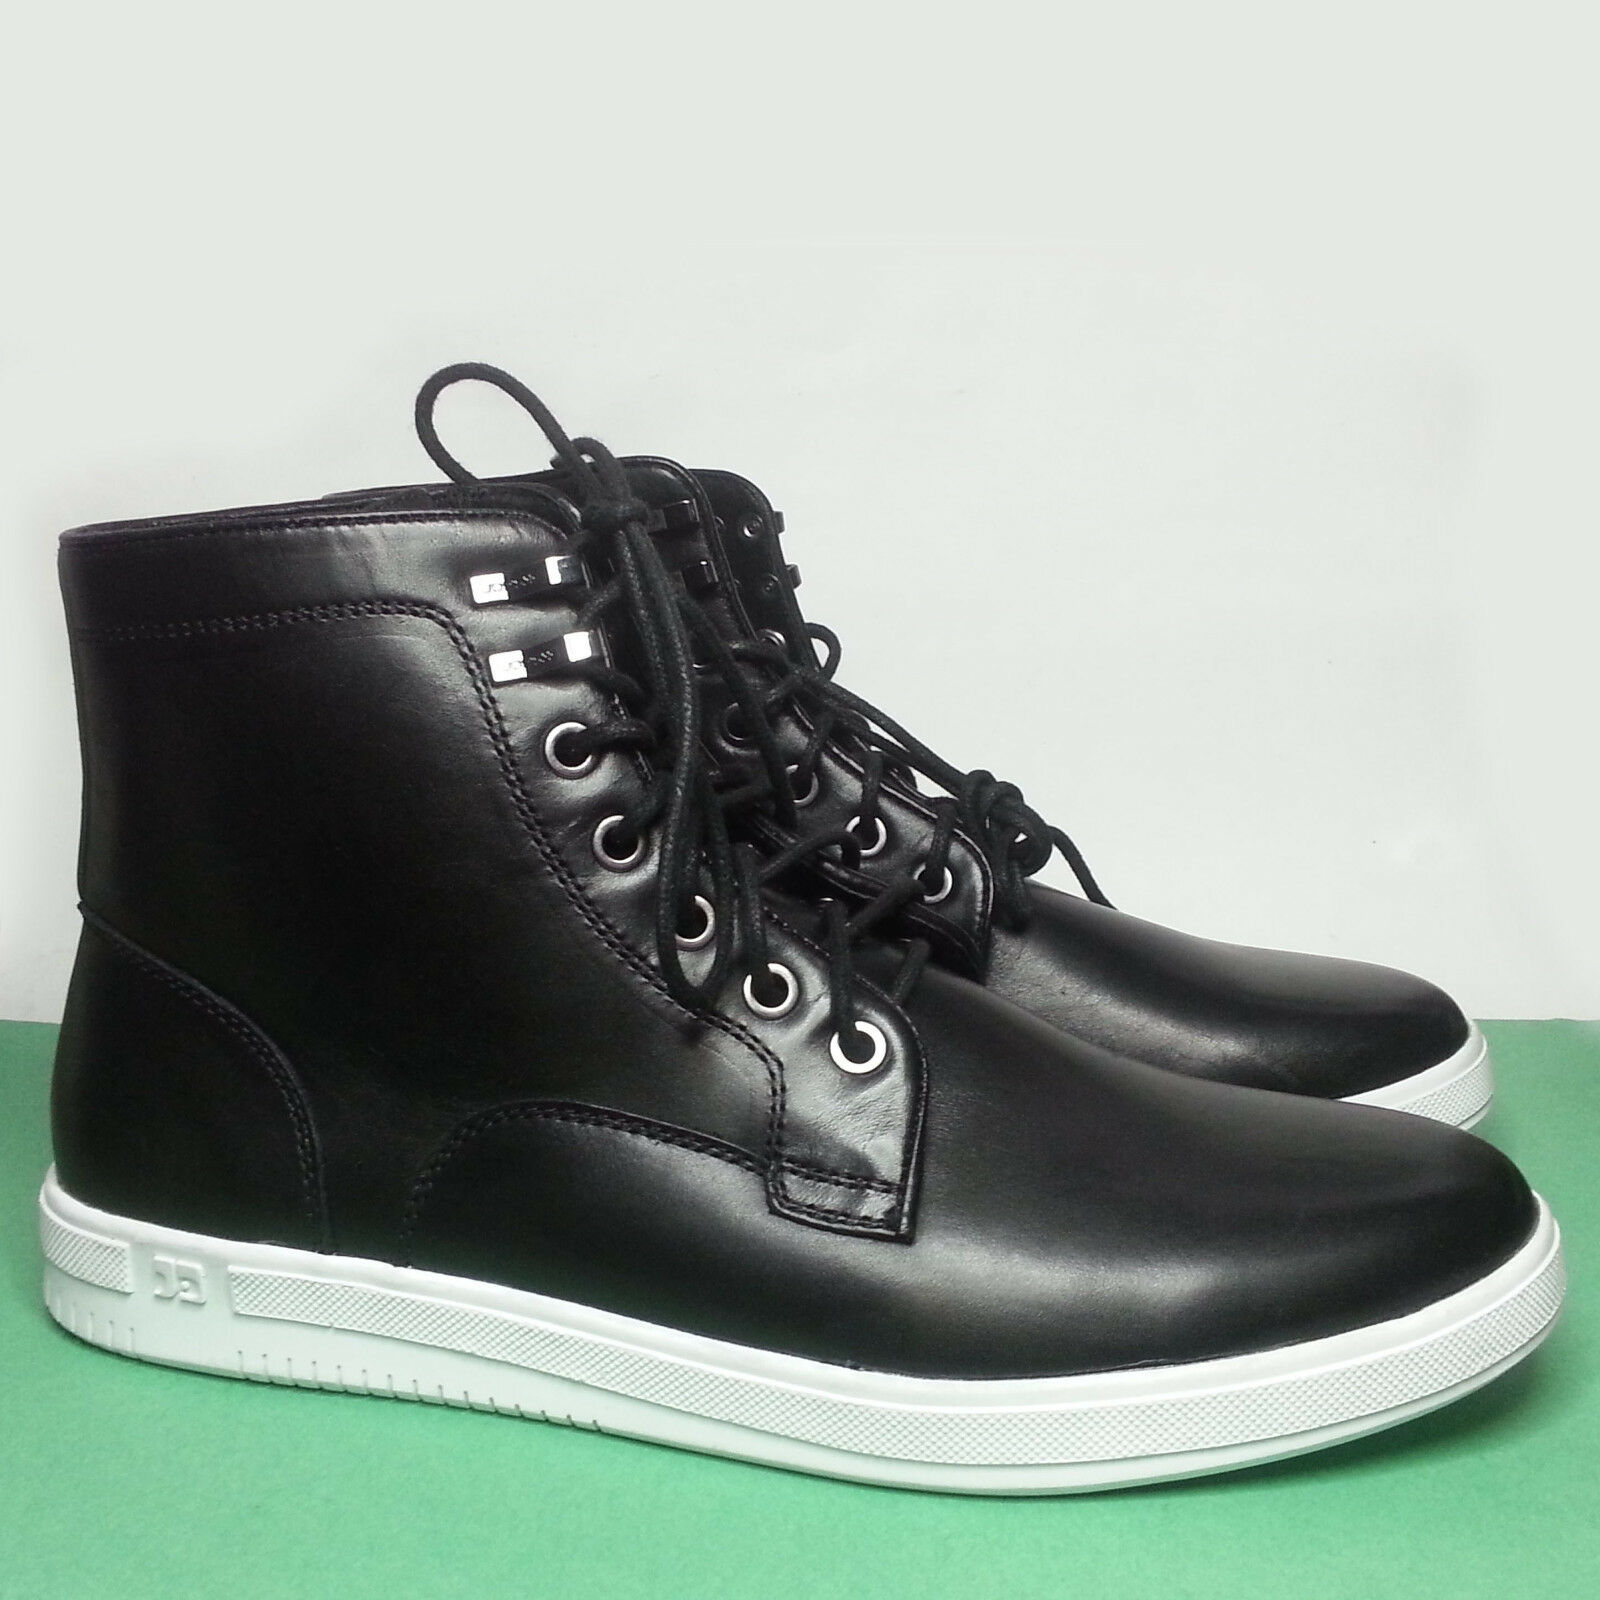 Joe's Men Size 8.5 Sneaker Boots Black Leather with White Sole